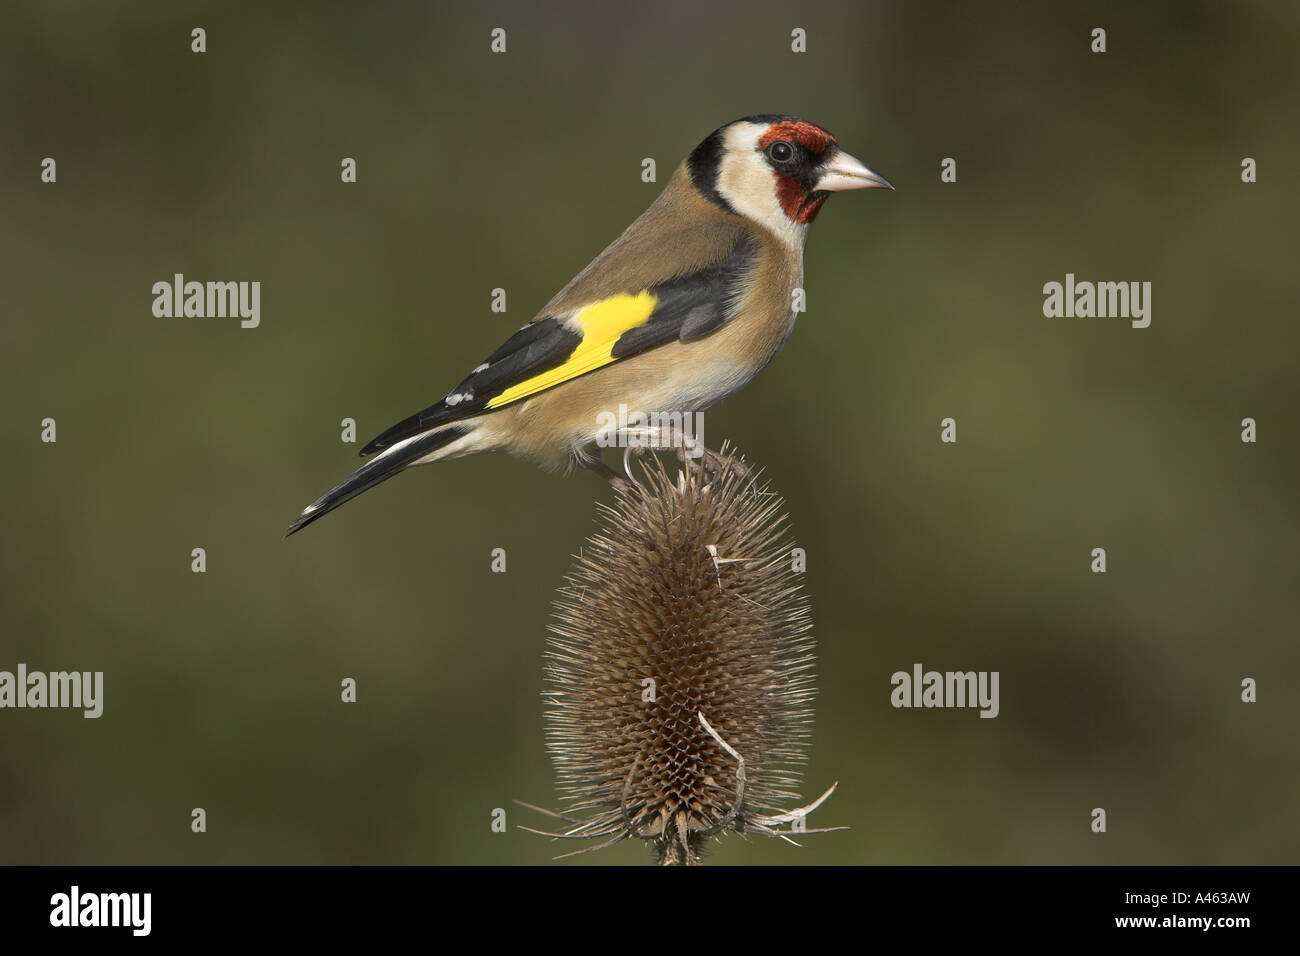 European Goldfinch Carduelis carduelis adult male perched on a Teasal seedhead, Todwick, South Yorkshire, England - Stock Image